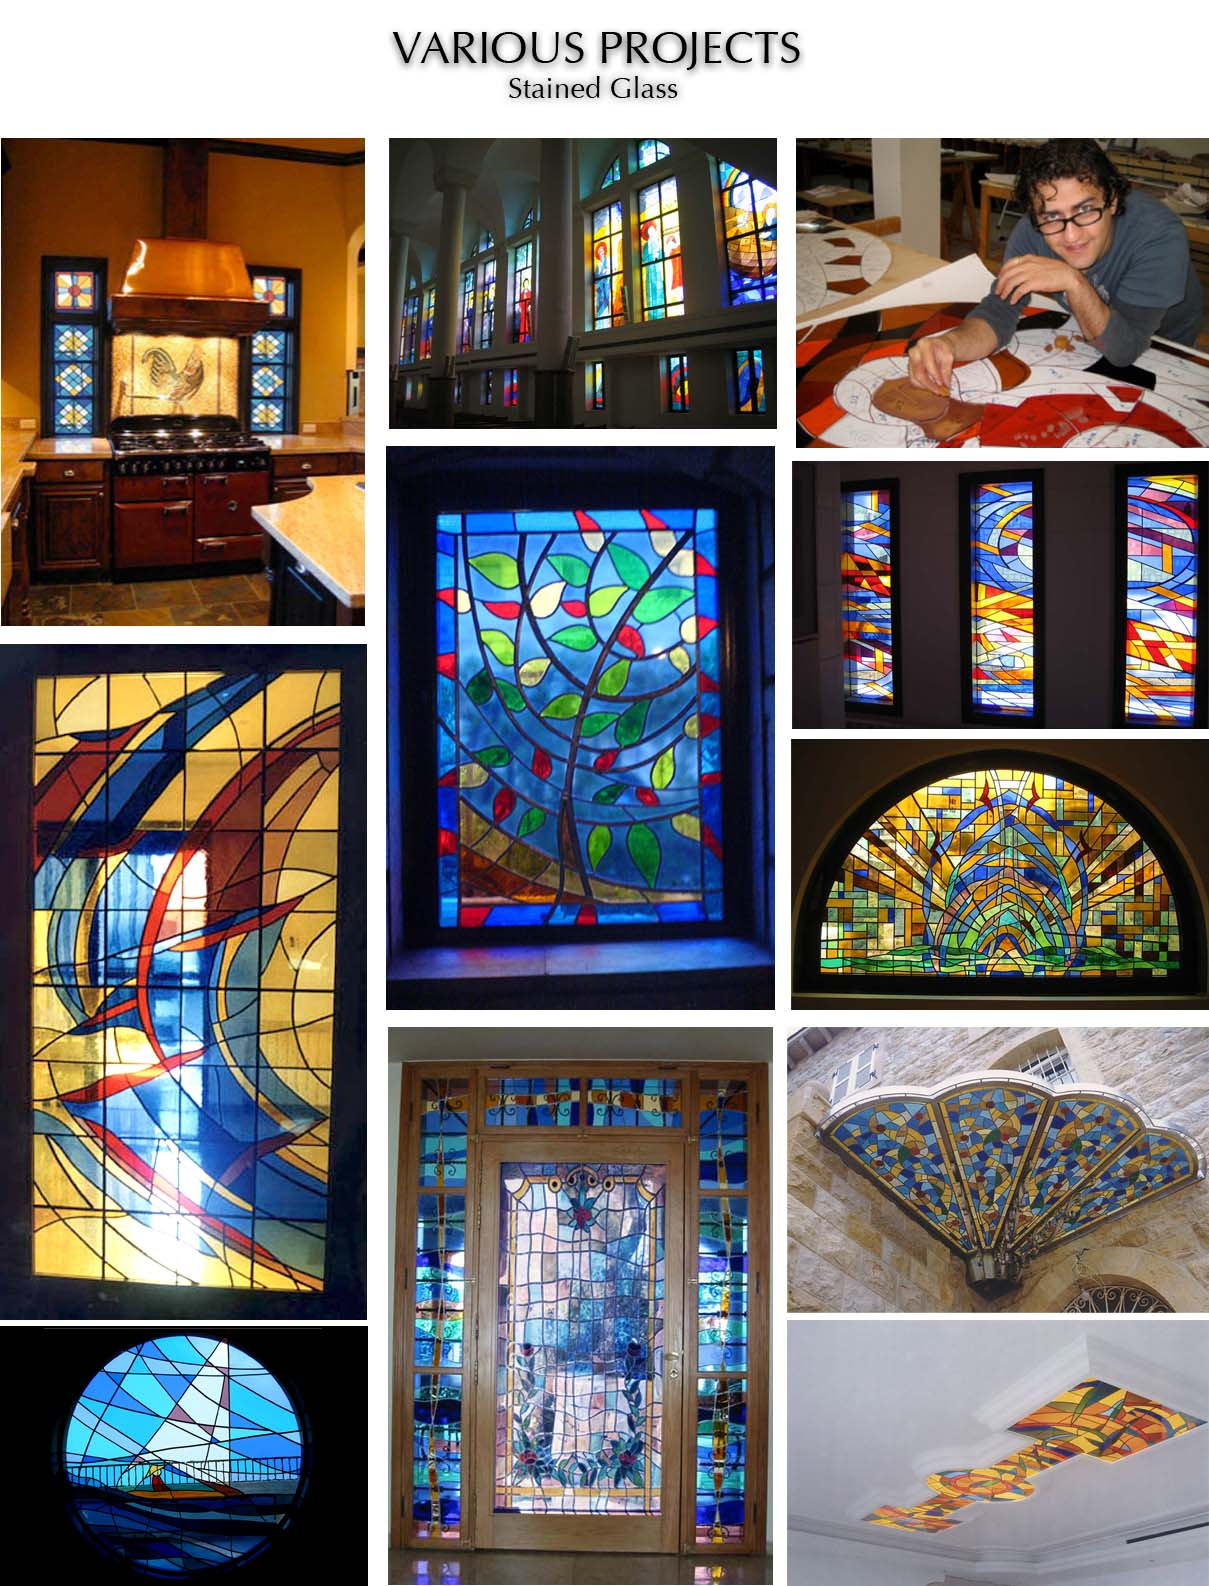 Stained glass Chady Elias